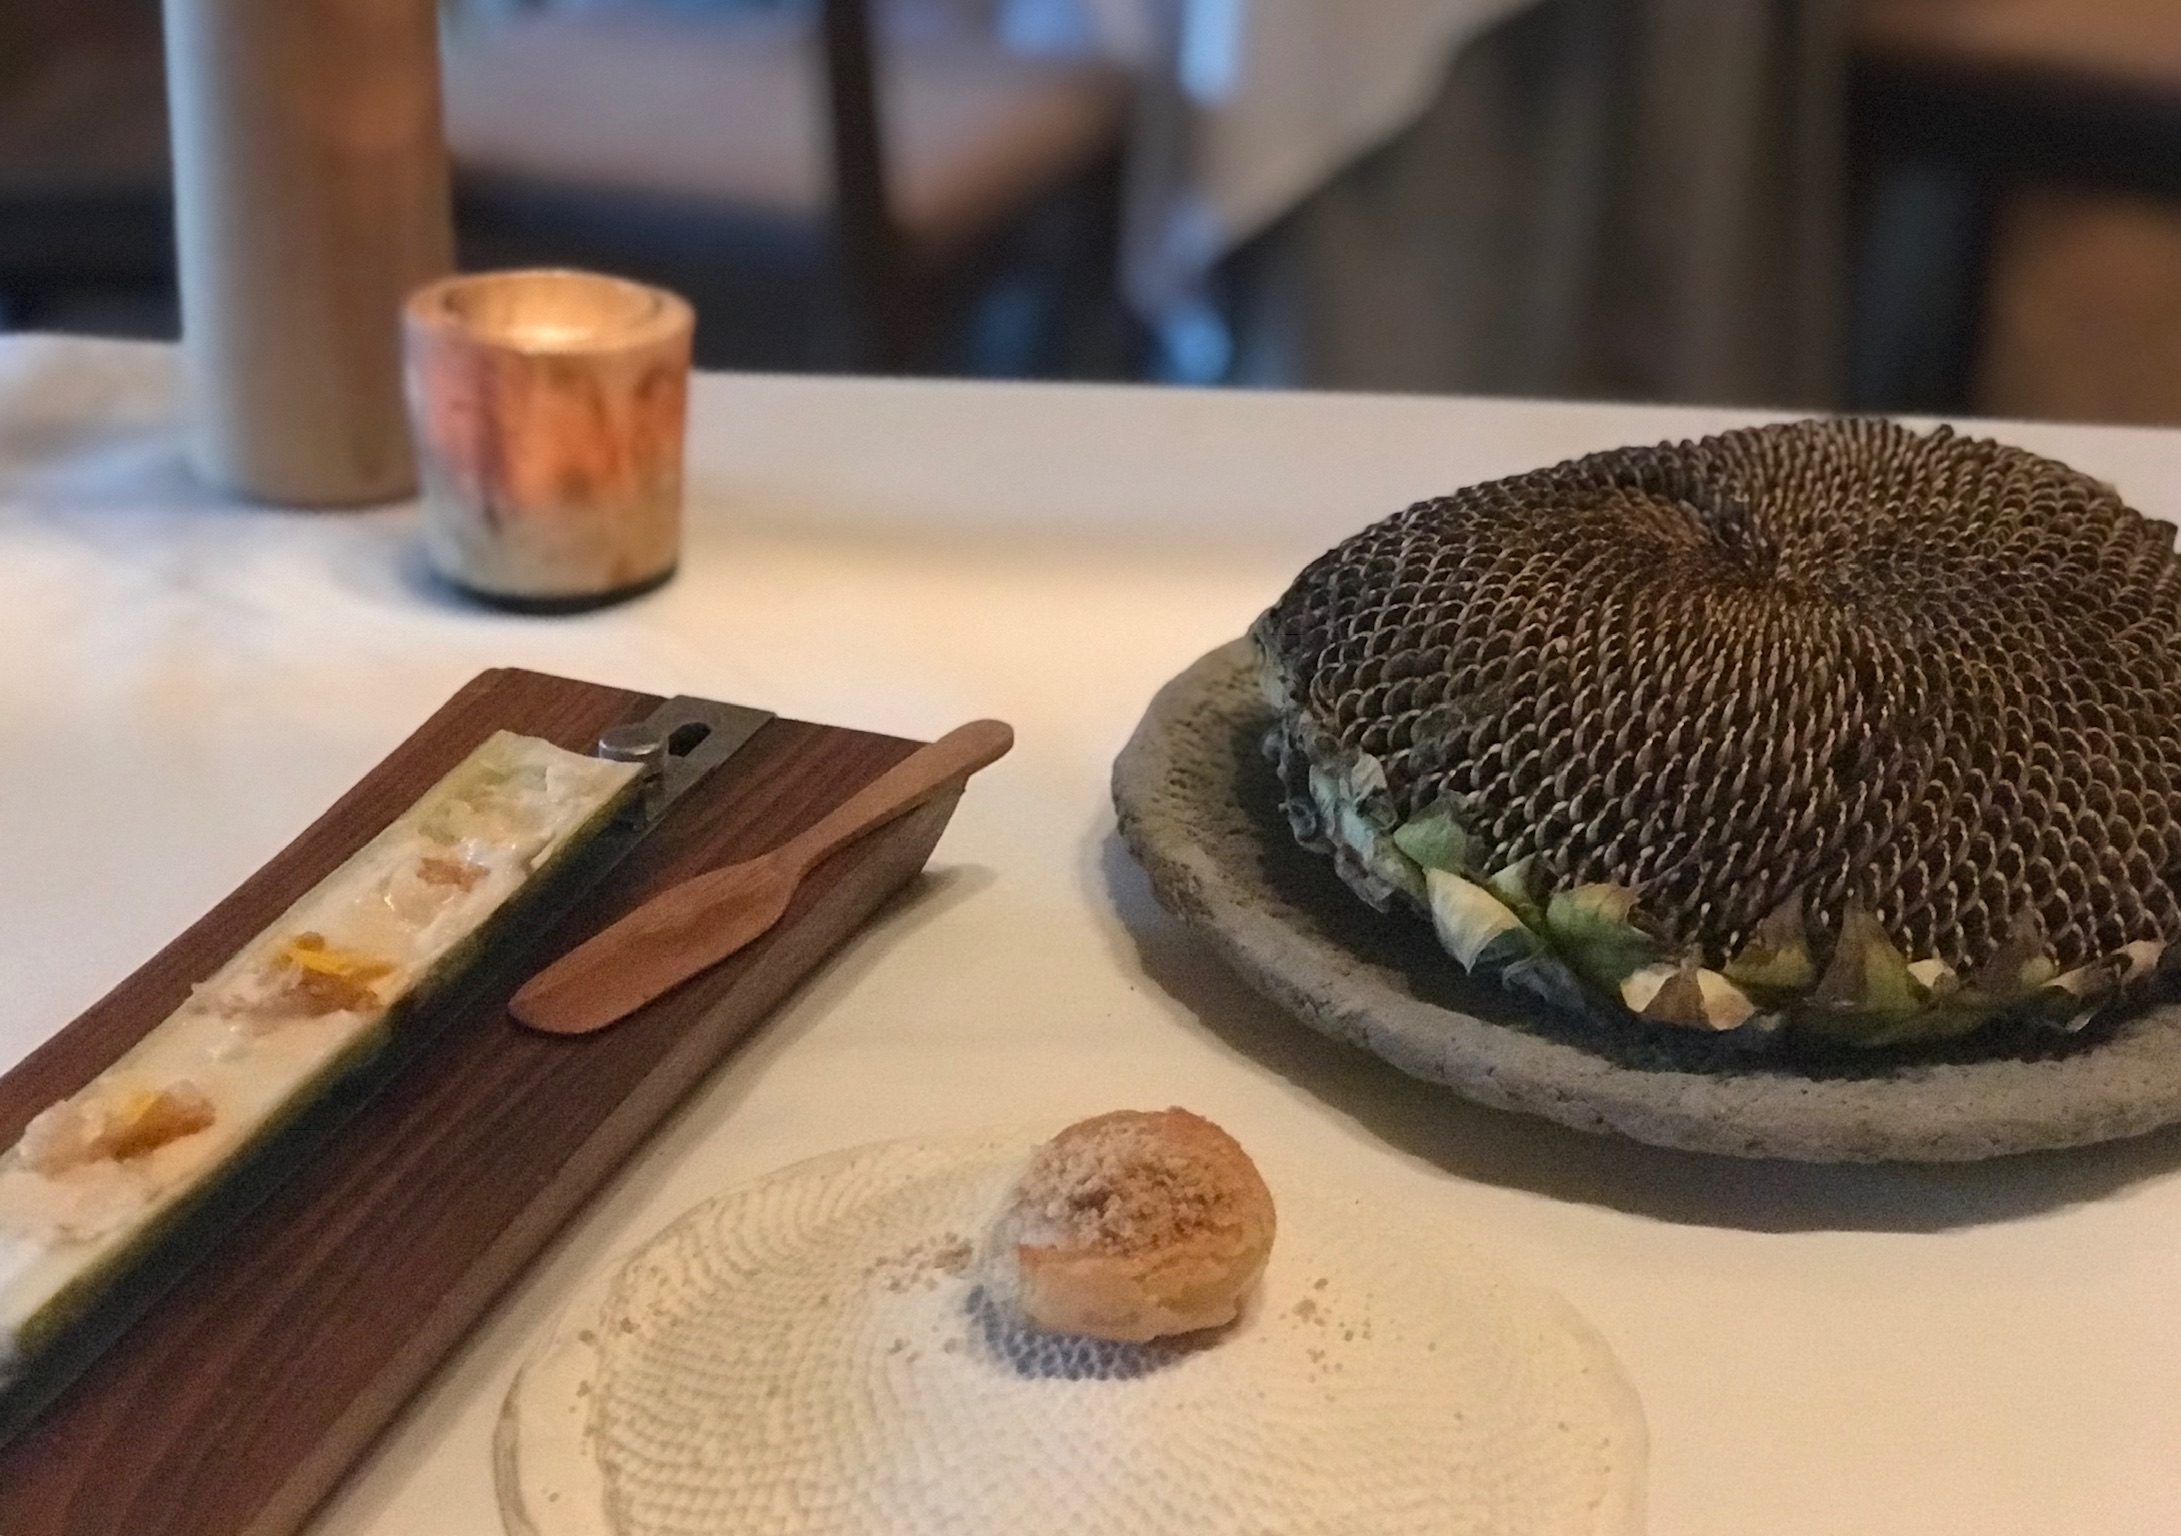 These two dishes, at left, were inspired by a sunflower farm recently acquired by Stone Barns. At right is a giant sunflower head.